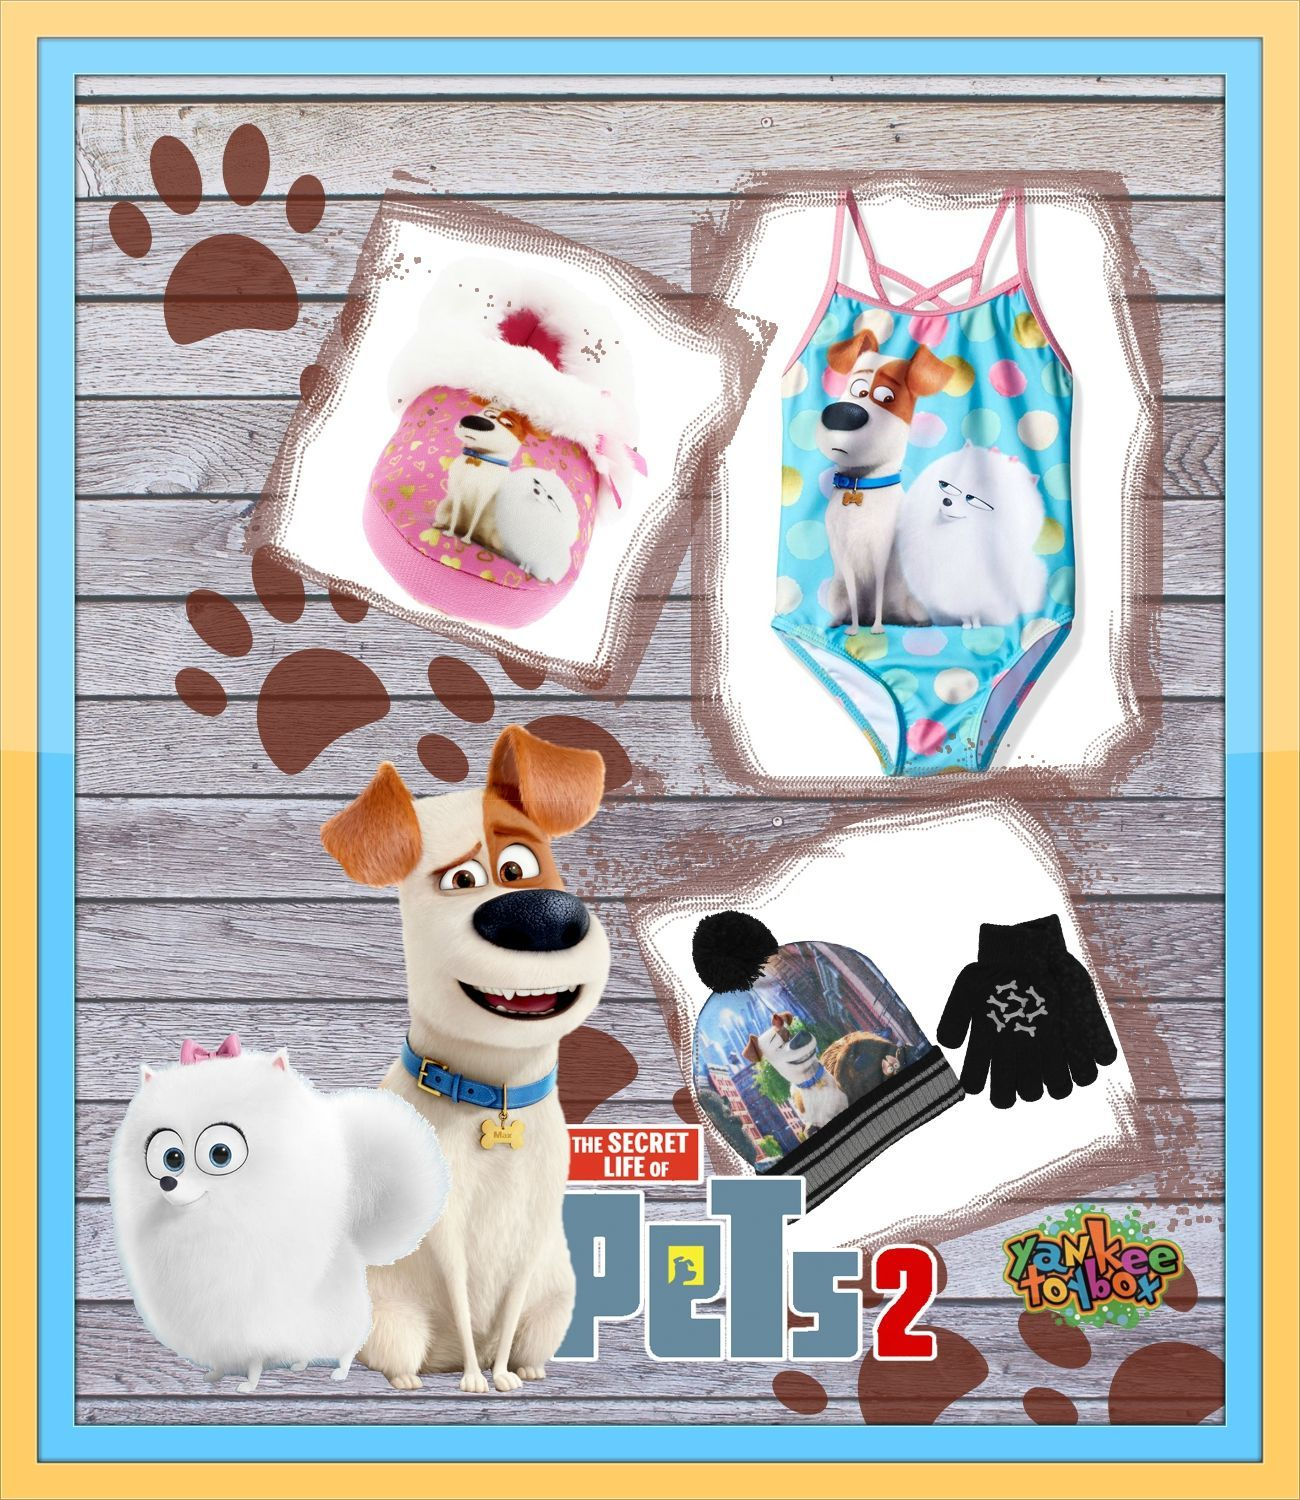 Get Ready For The Secret Life Of Pets 2 In Theaters June 7th With Adorable Apparel Shop At Yankee Toy Box On Amazon These Toy Boxes Pbs Kids Sesame Street